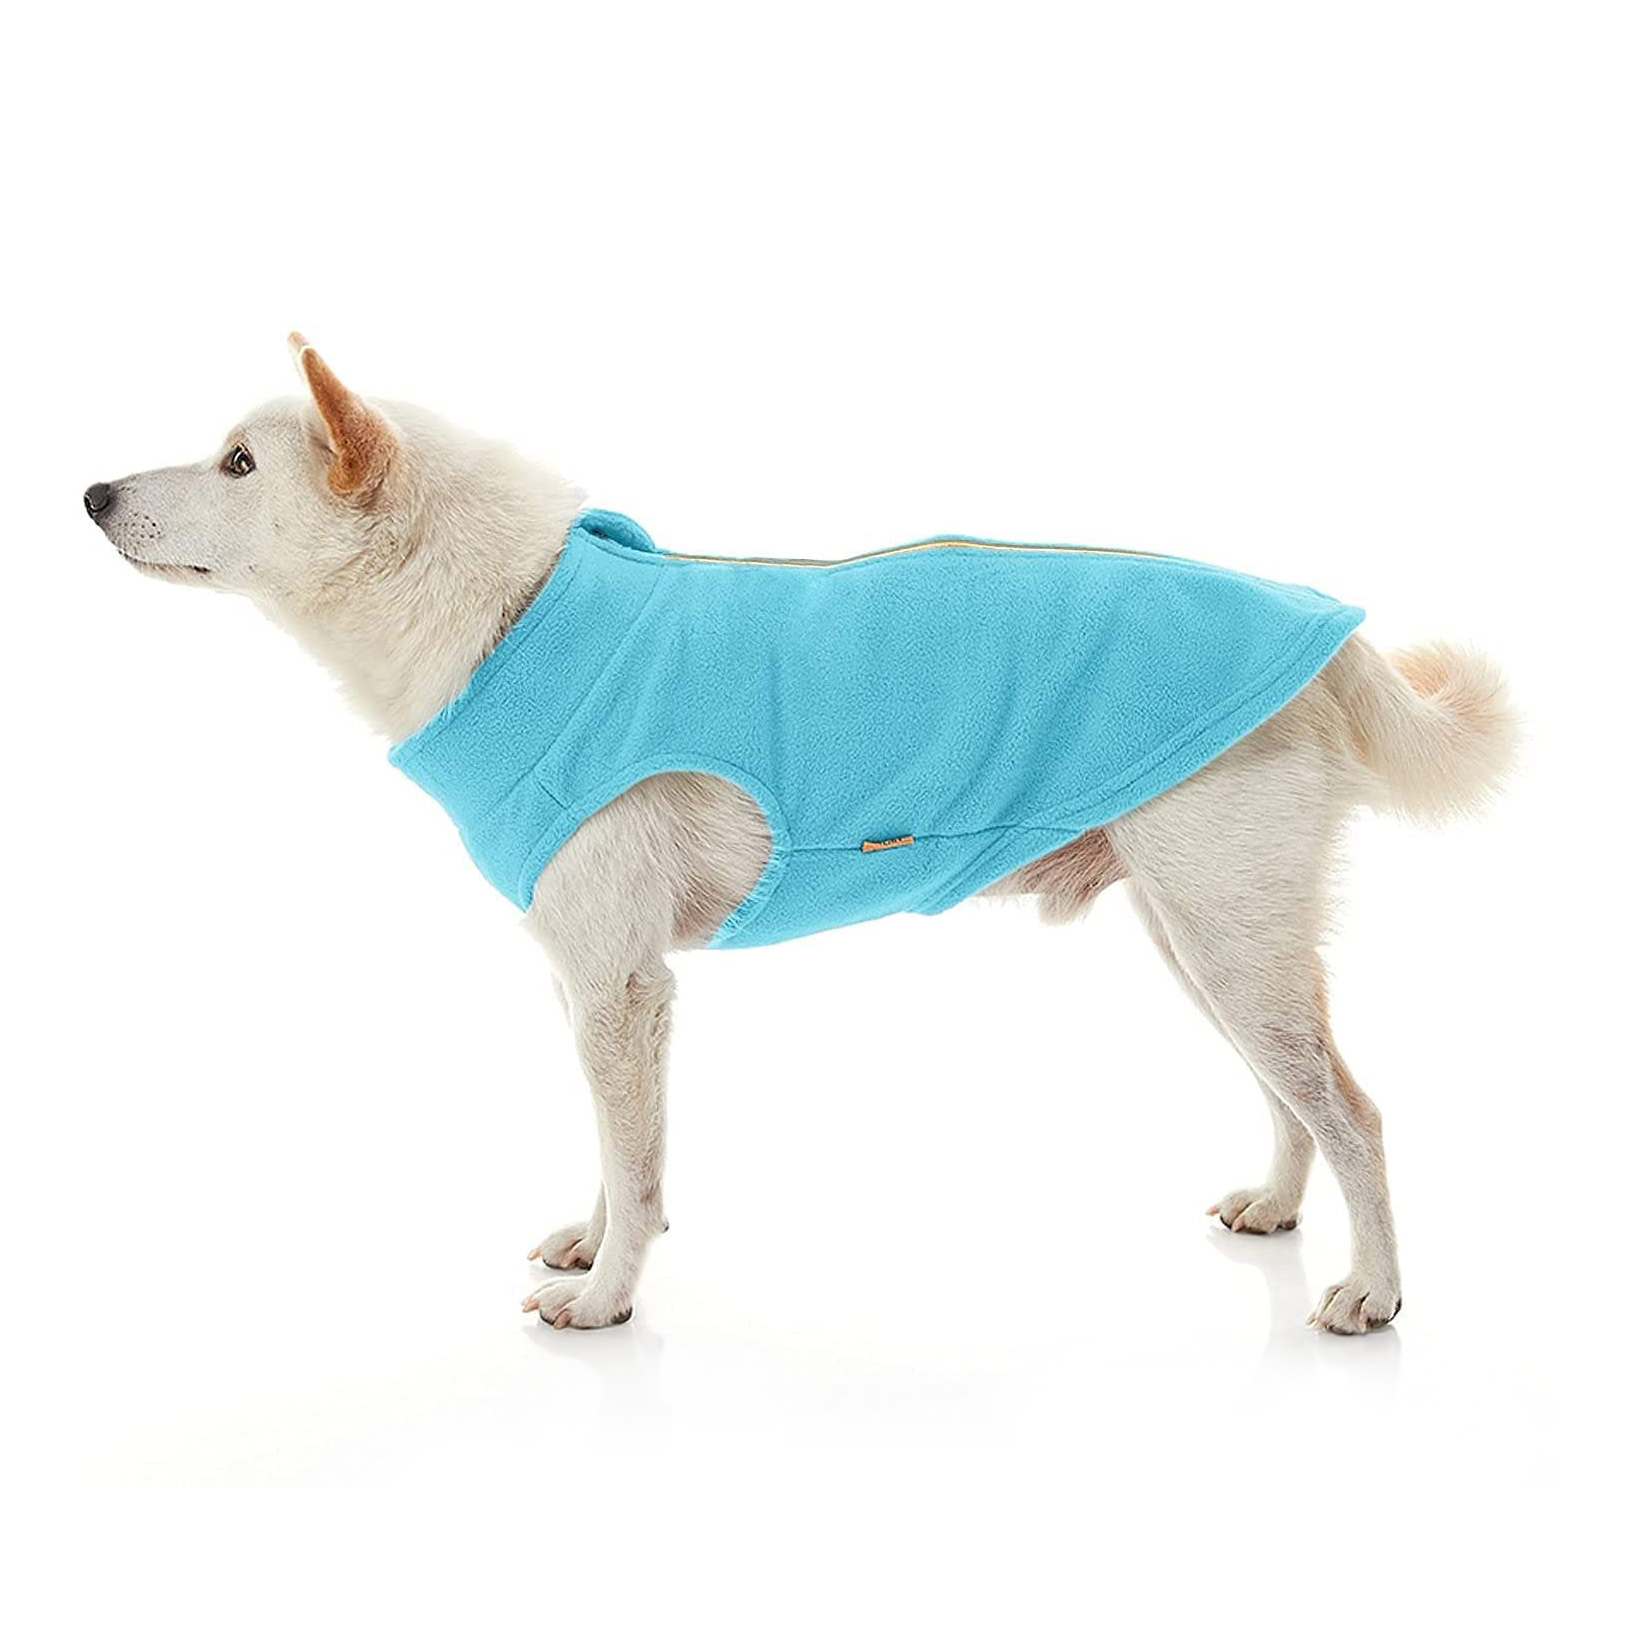 Dog wearing a Gooby Zip Up Fleece Sweater on a white background